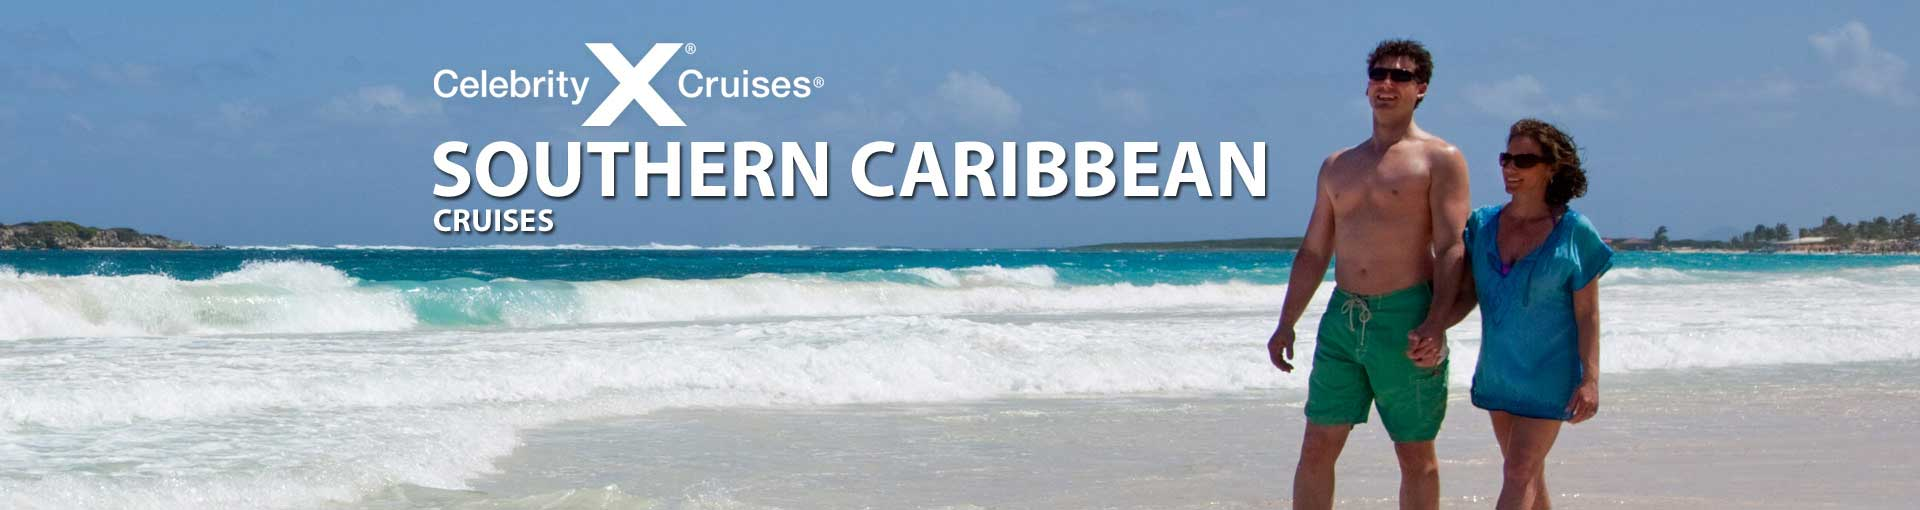 CruiseDirect.com | Cruise Price Guarantee